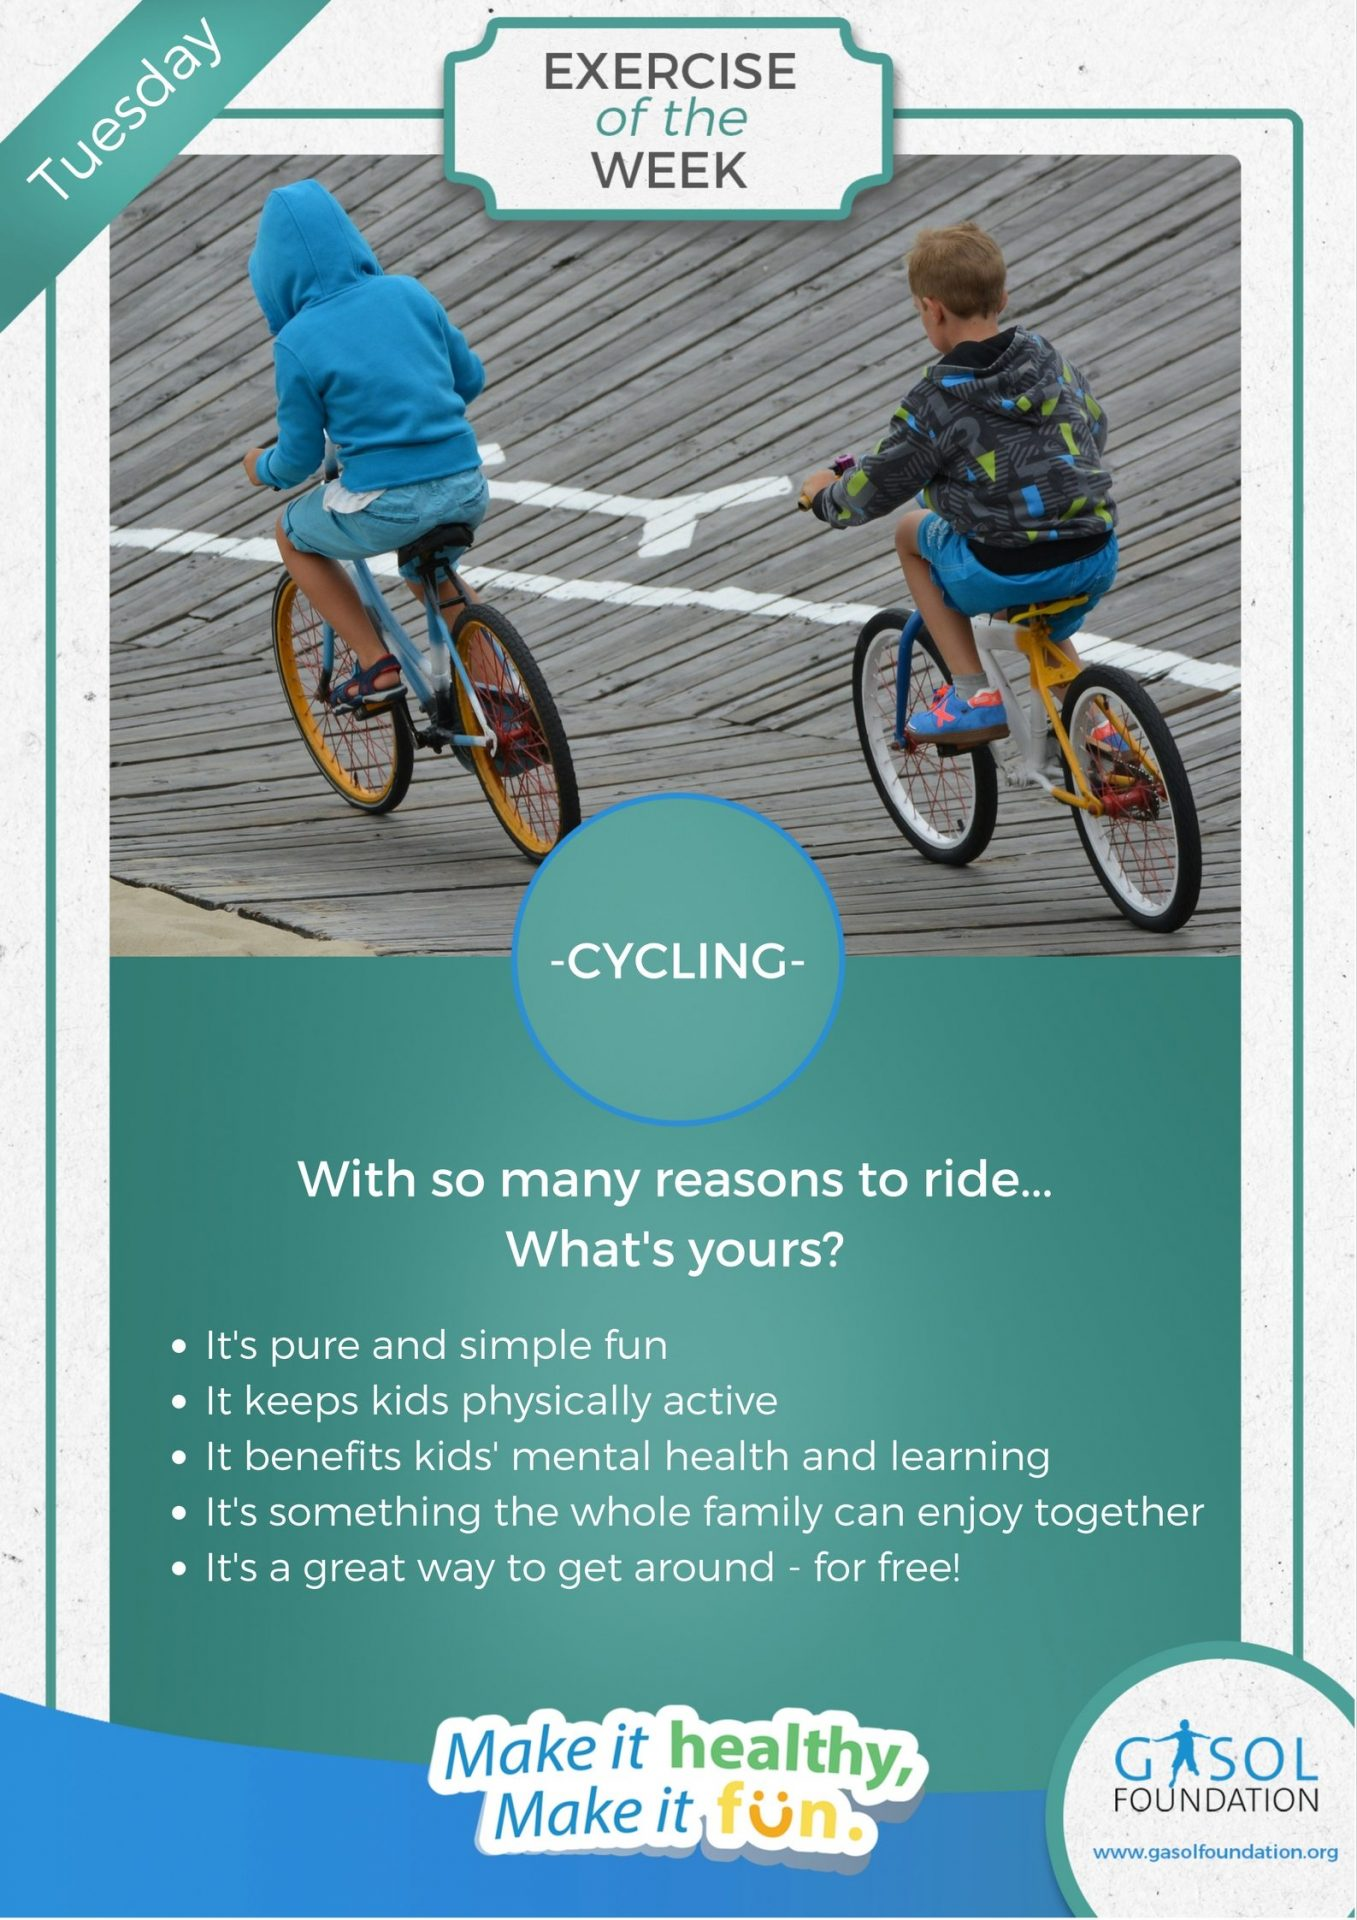 Bicycling is Healthy and Fun for Children - Gasol Foundation